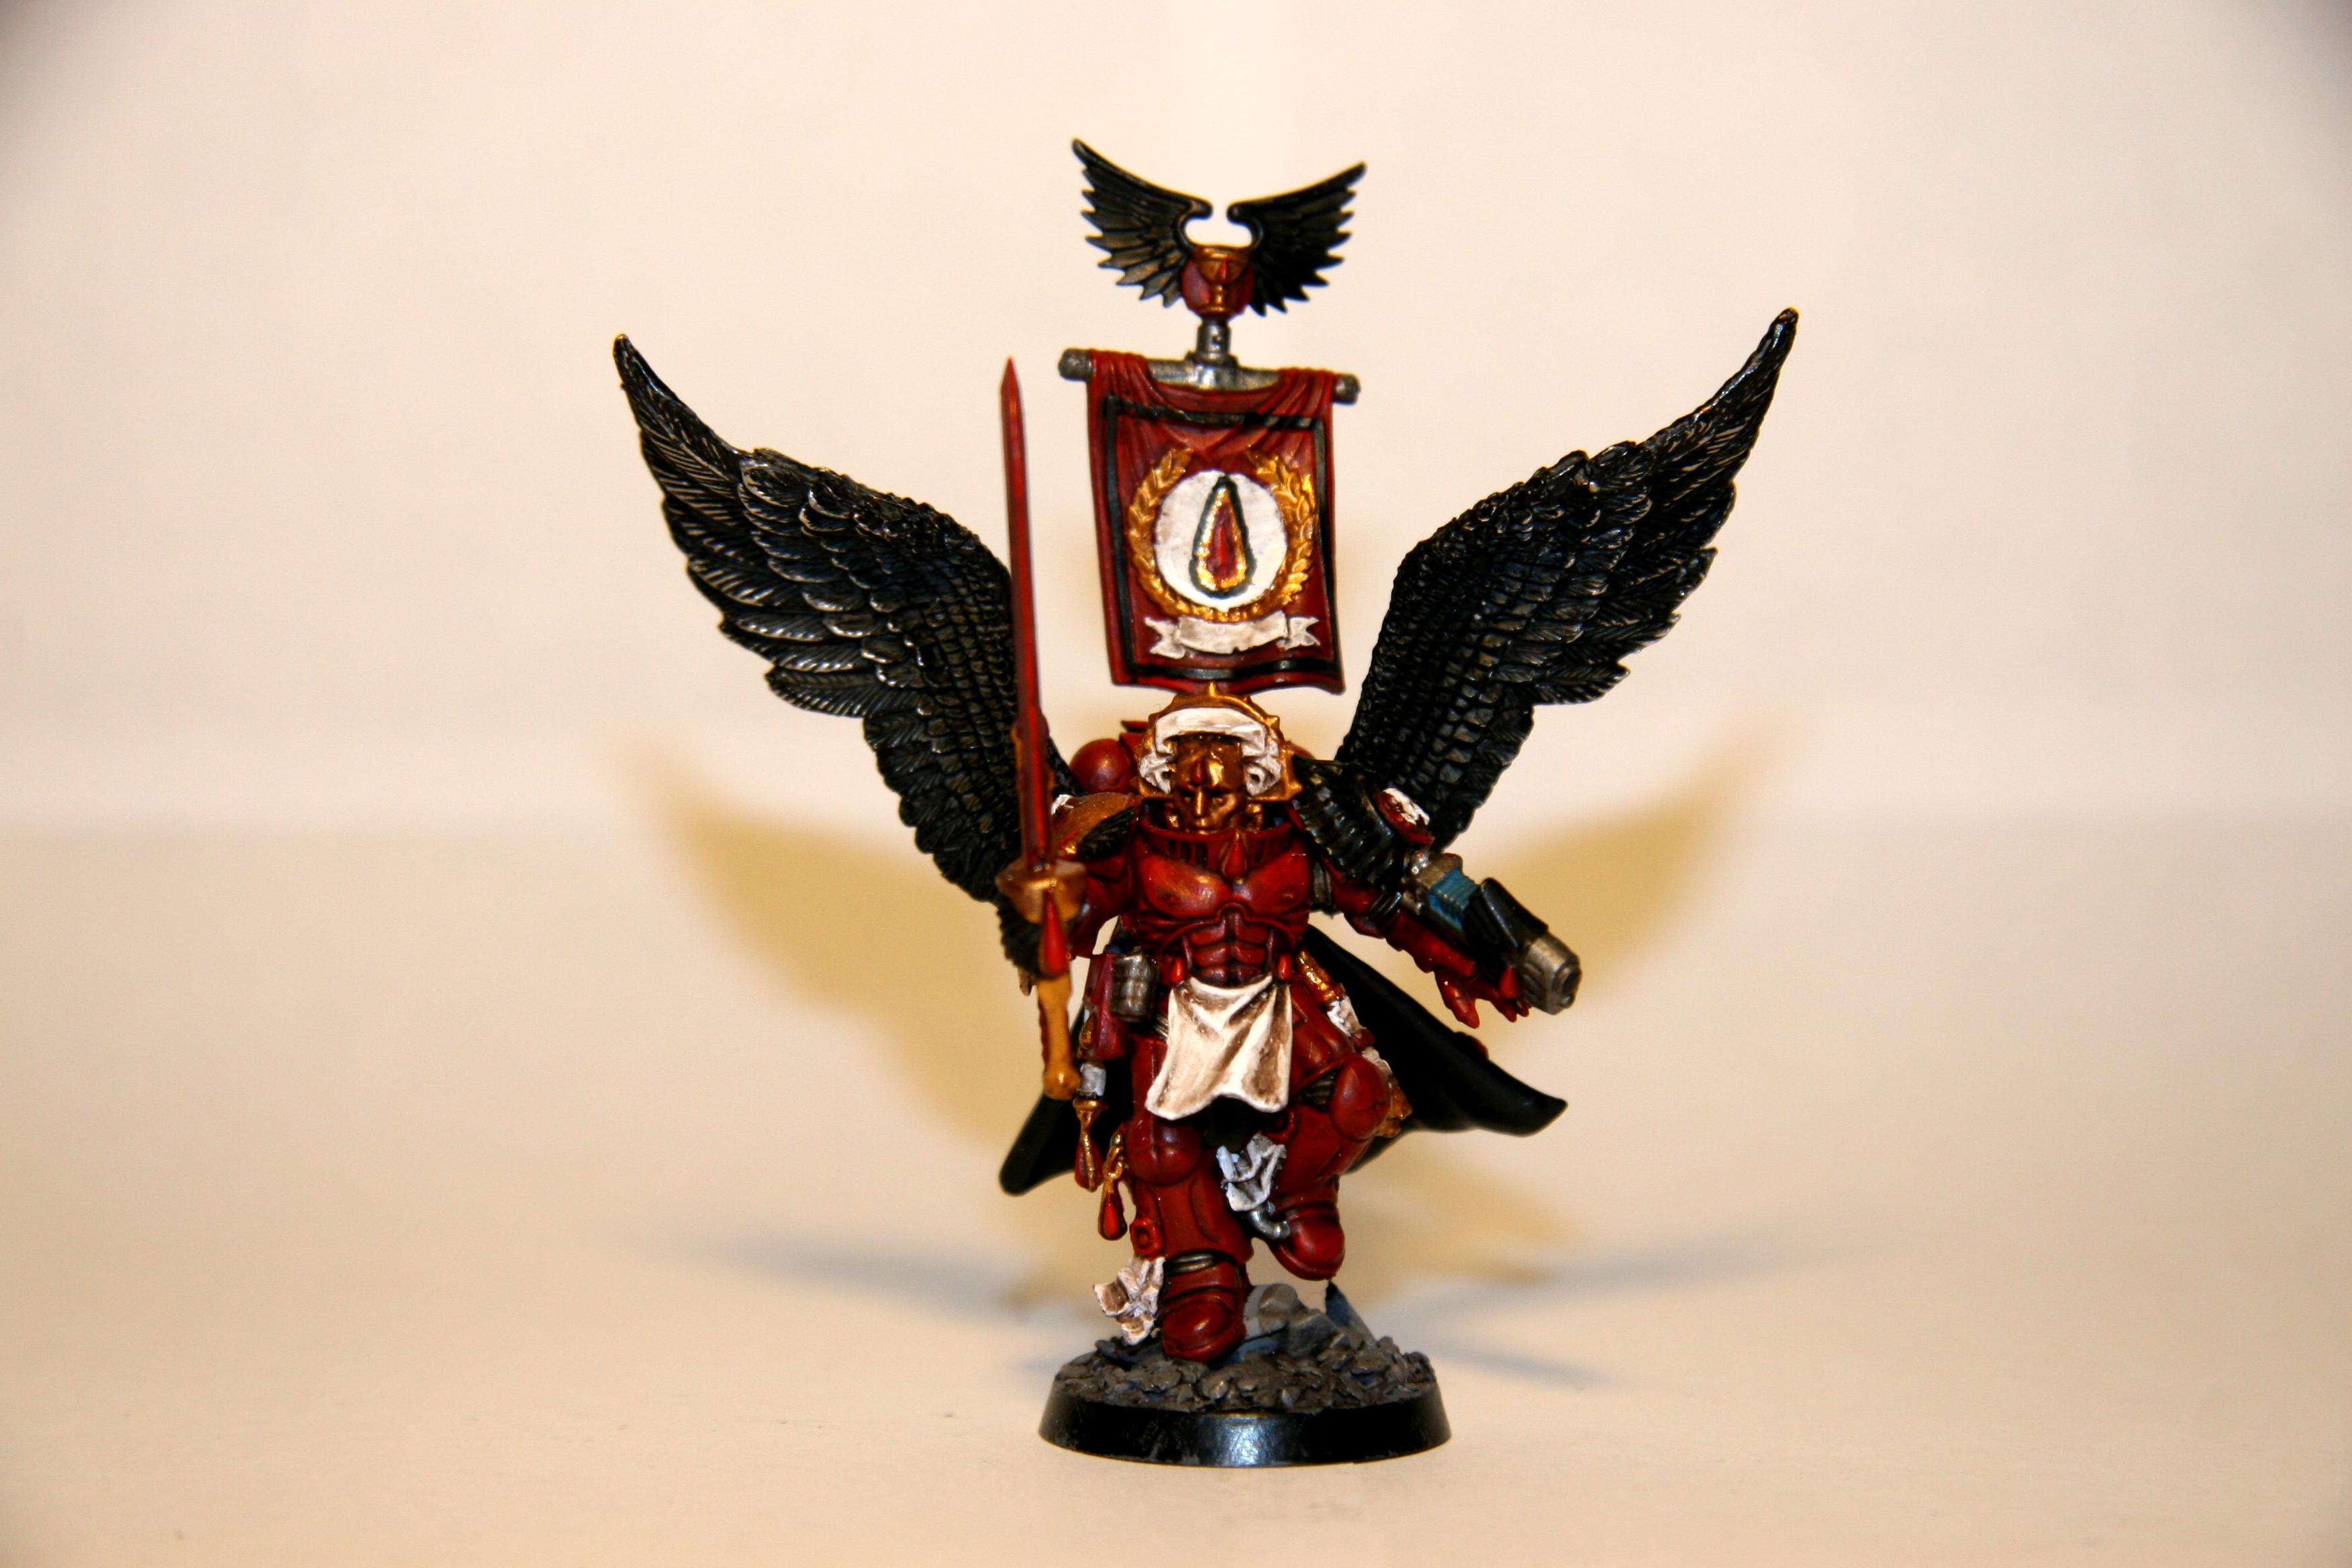 Artificer Armor, Blood Angels, Character, Force Weapon, Mephiston, Plasma Pistol, Winged